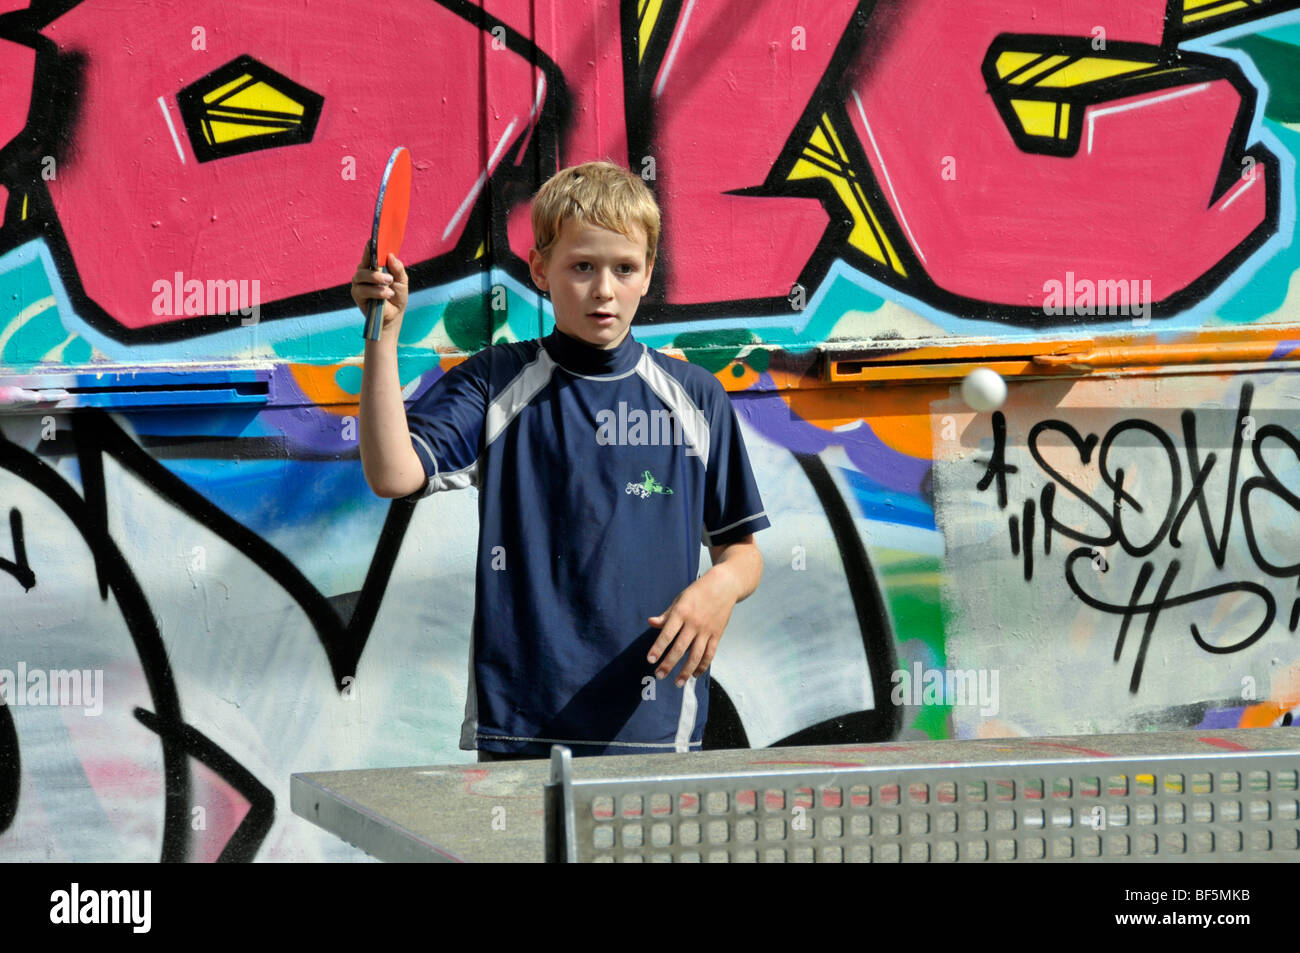 9-year-old boy playing table tennis, football ground in Cologne, North Rhine-Westphalia, Germany, Europe - Stock Image